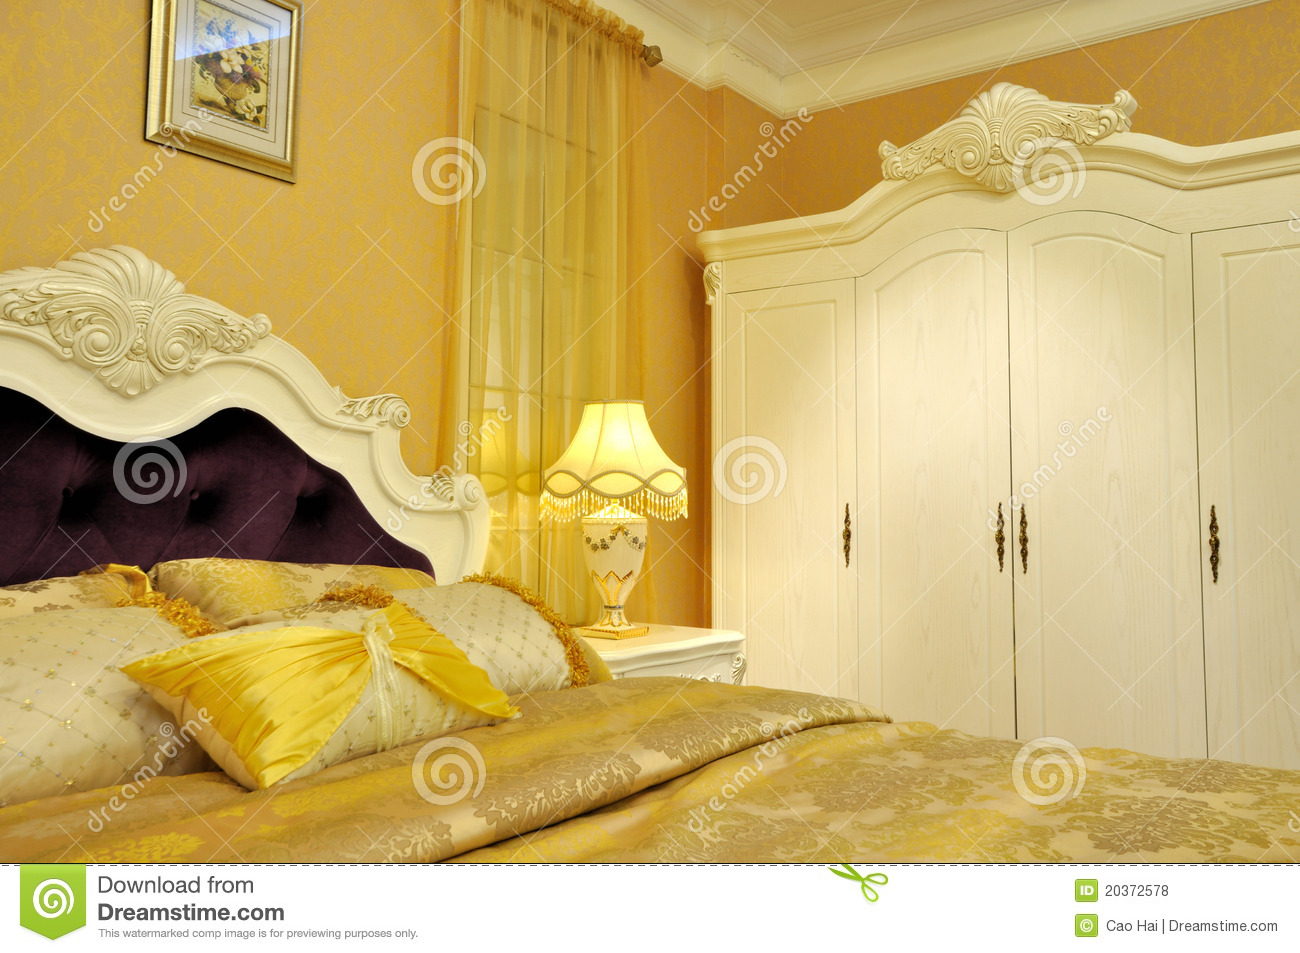 yellow shining bedding and bedroom furniture stock photo 13888 | yellow shining bedding bedroom furniture 20372578